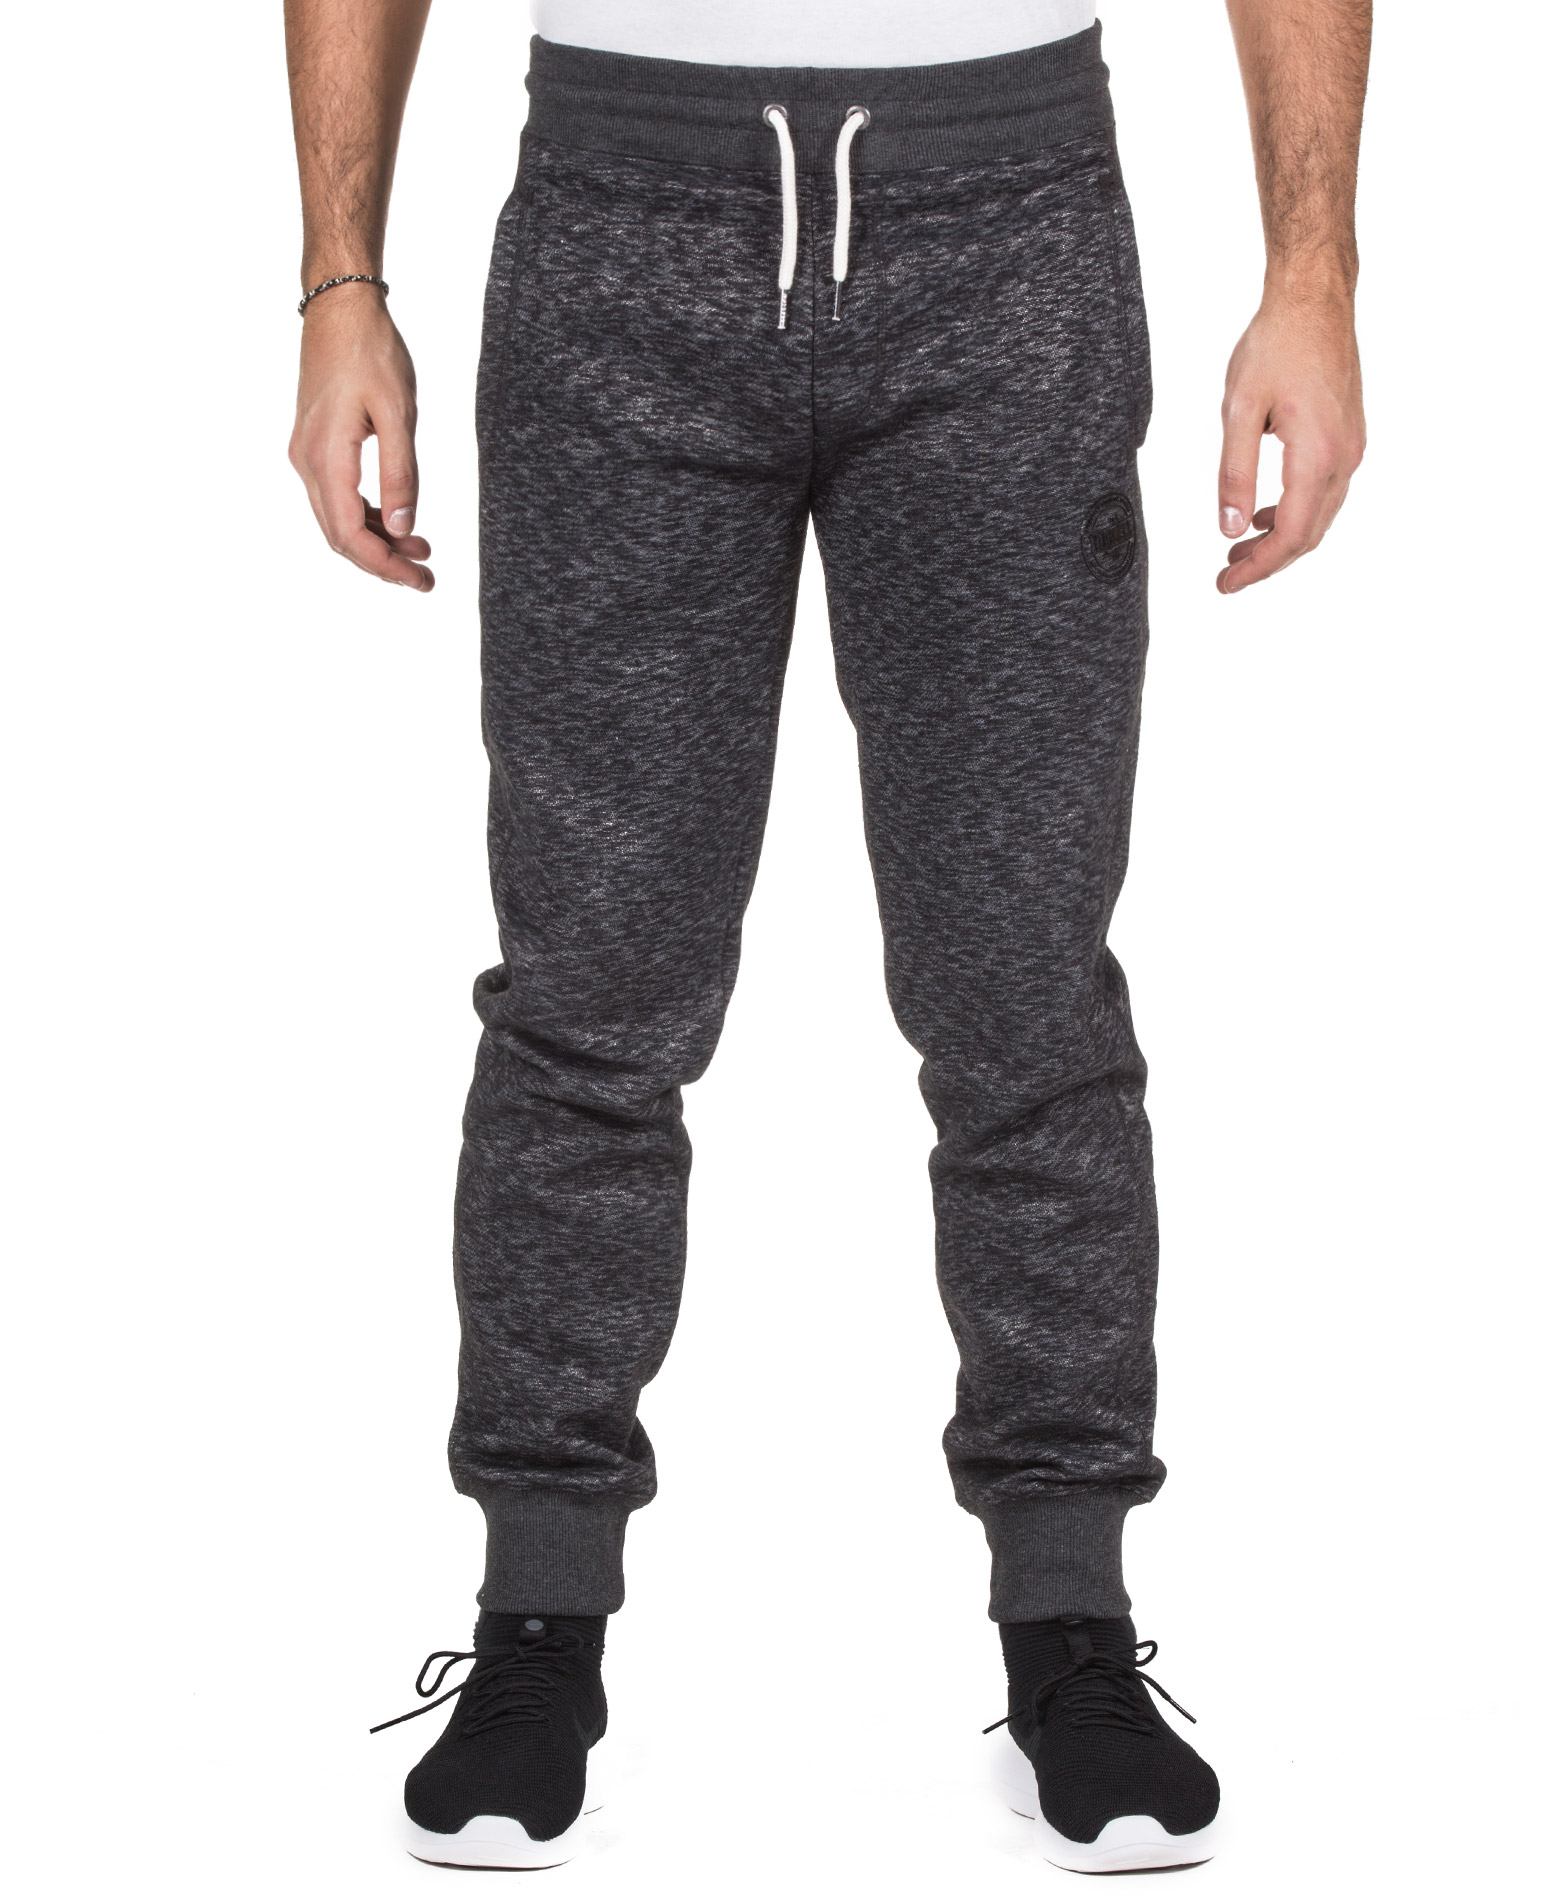 RUSSELL ATHLETIC COLLEGIATE CUFFED PANT A7-038-2-098 Ανθρακί ανδρας   ενδύματα   παντελόνια